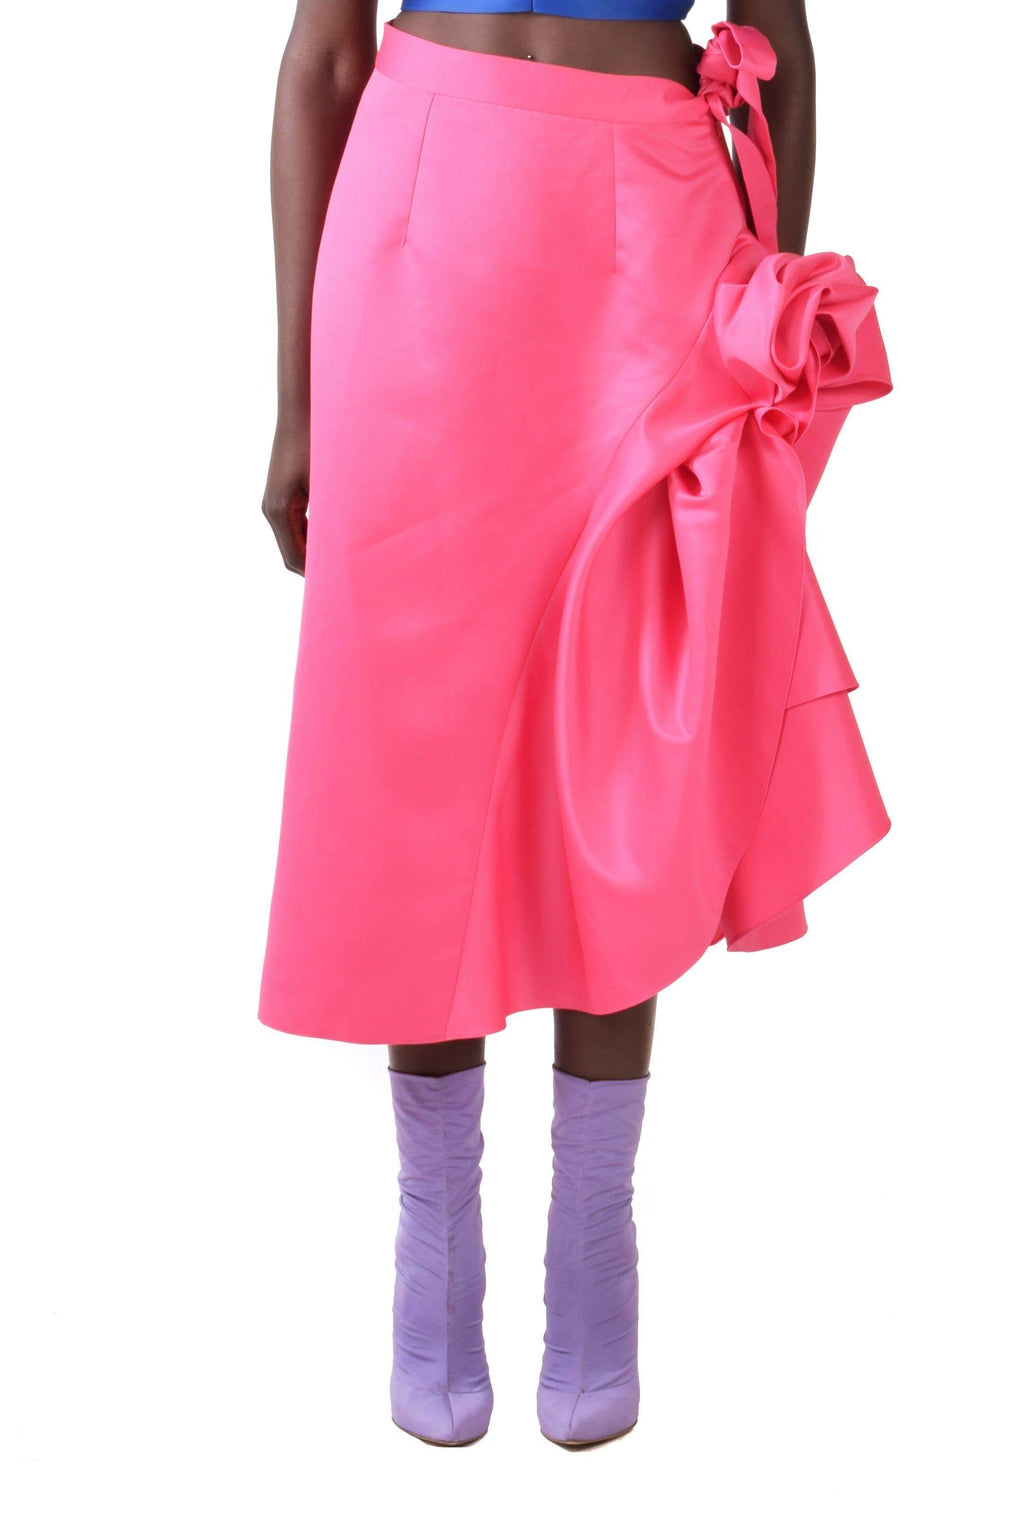 Pink Midi A-line Skirt With Moulage Ruffles - BYTRIBUTE